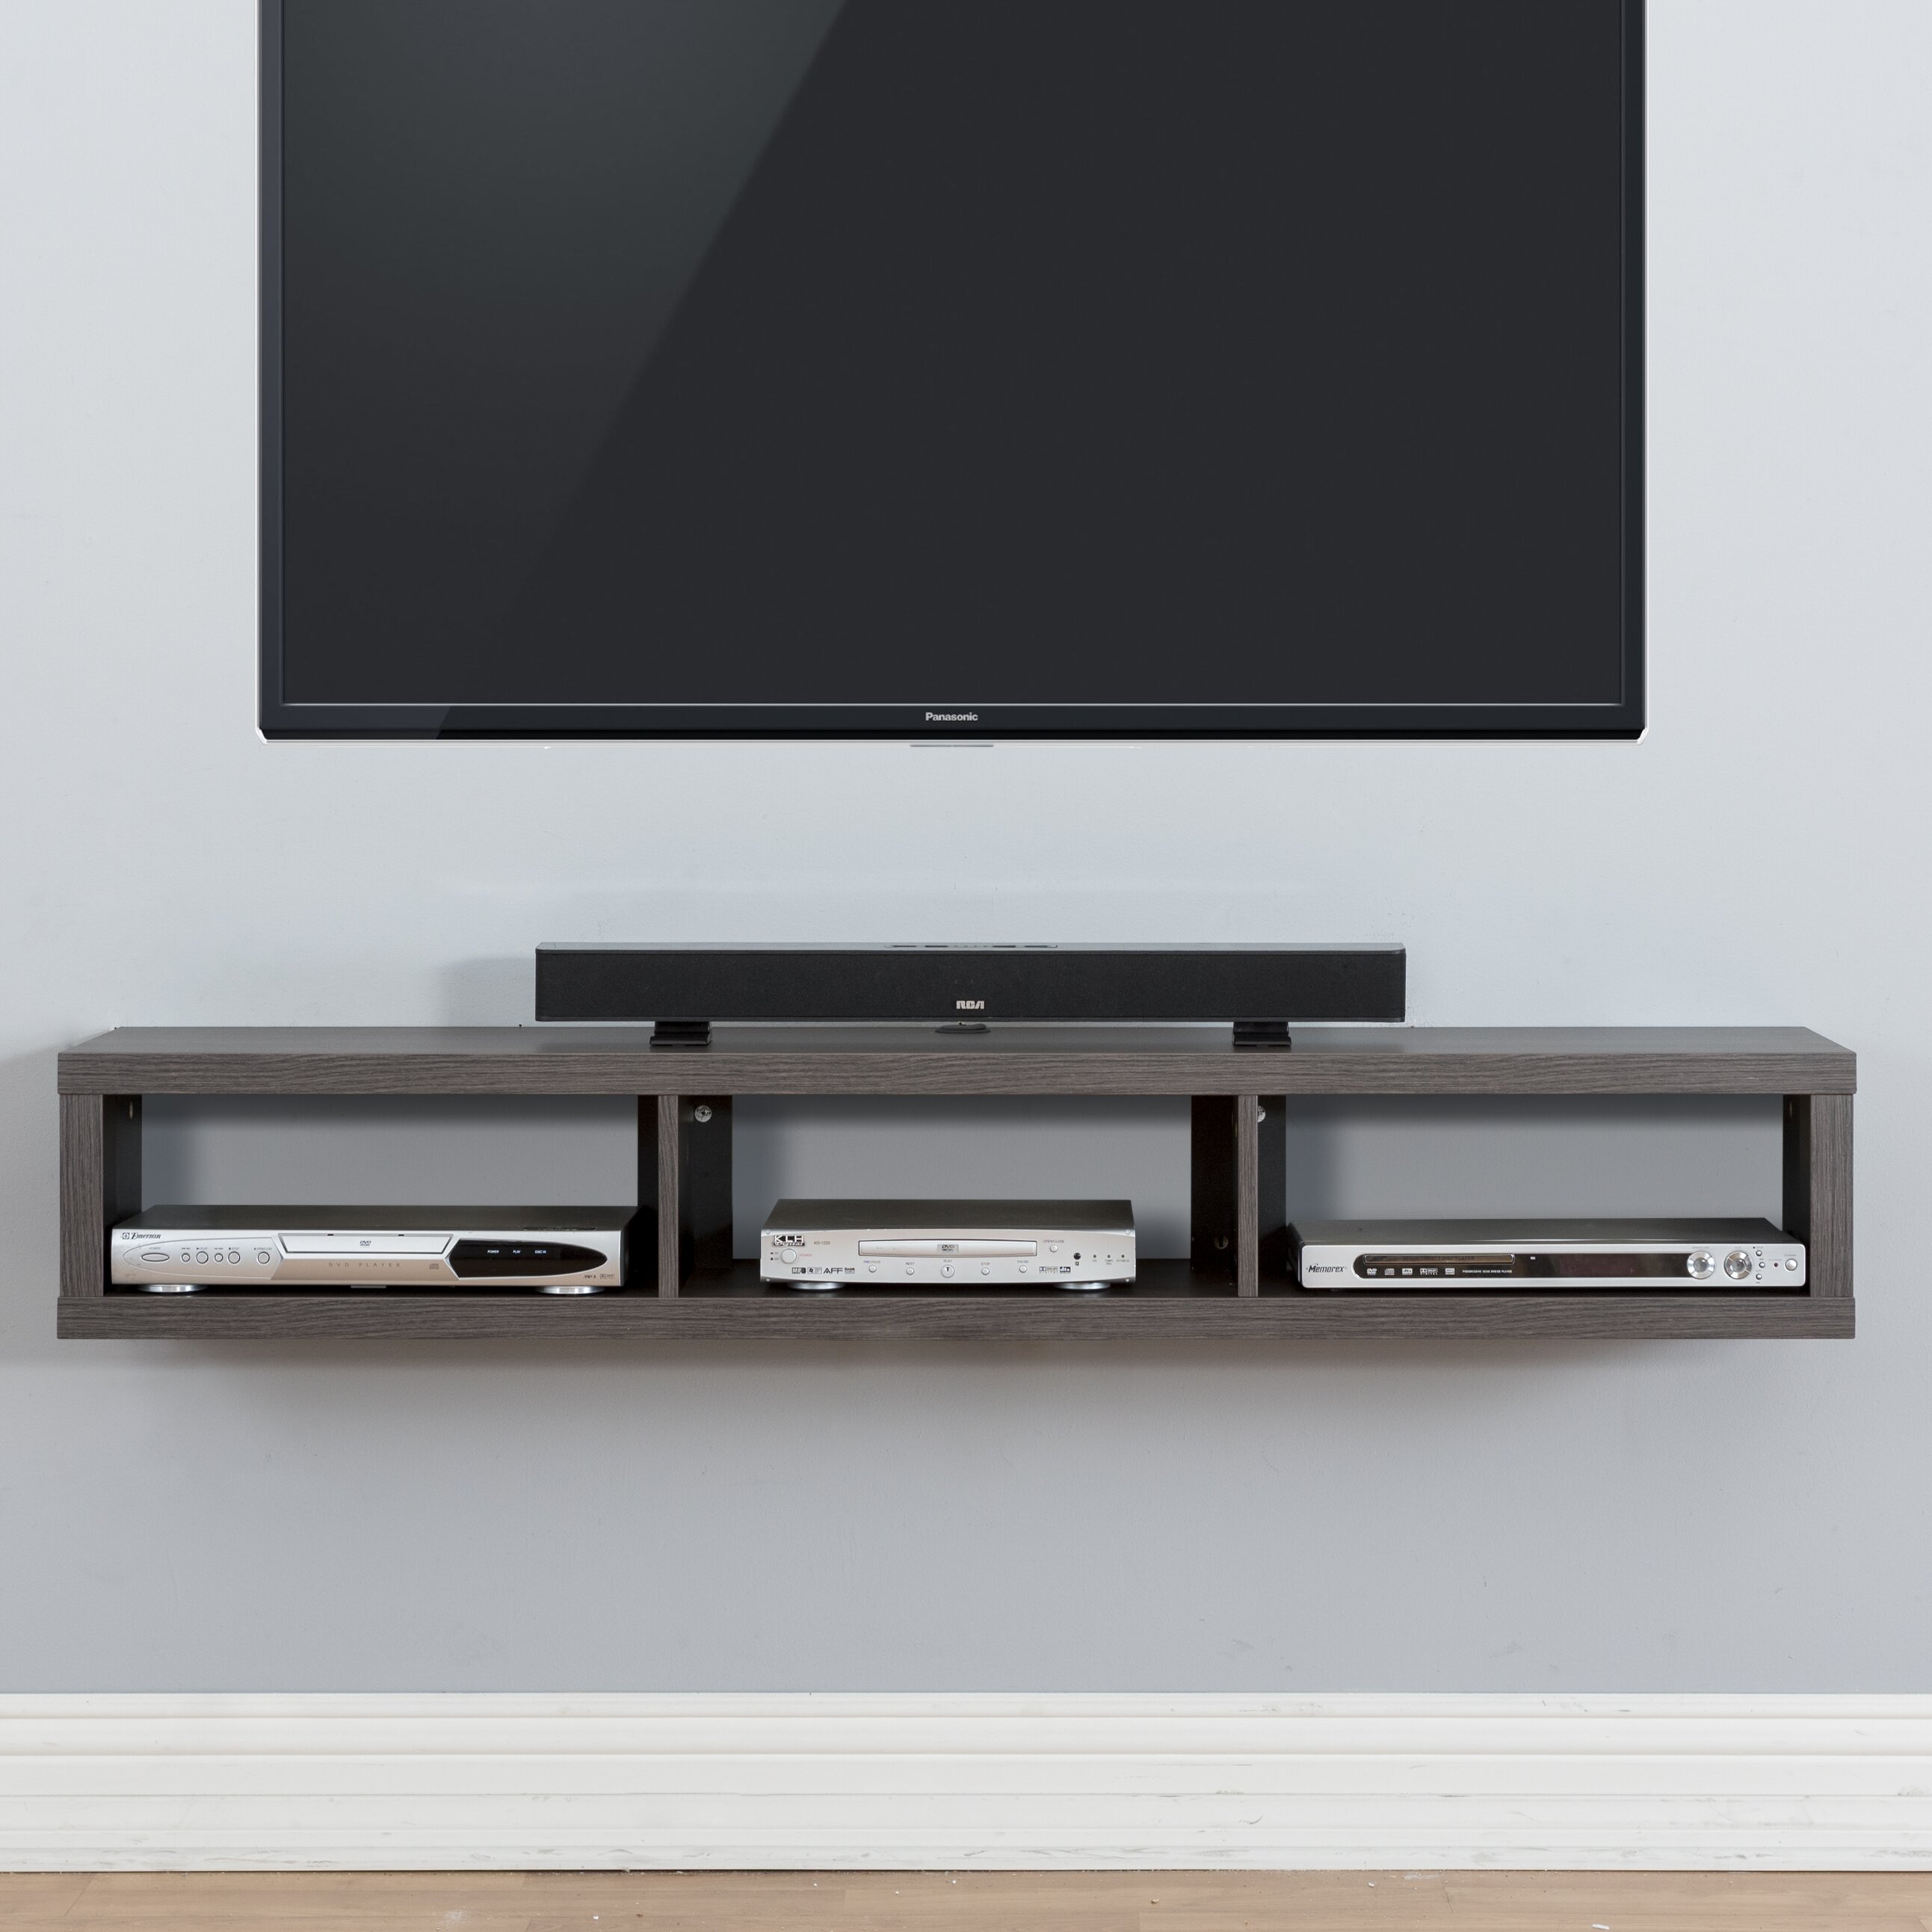 Image Result For Wall Mounted Shelves For Tv Components